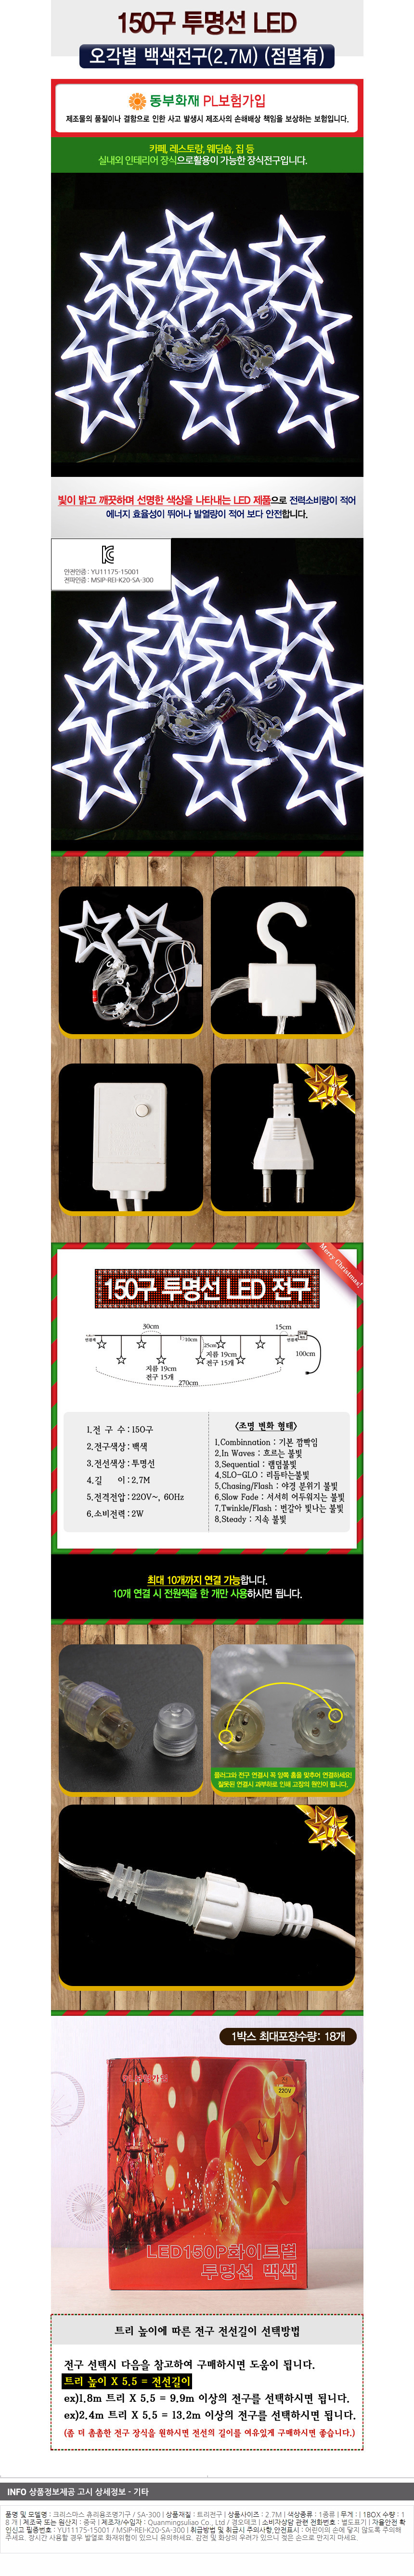 [ WINEQOK ] Christmas Goods / Transparent line LED White Star White bulb Flashing No connection possible